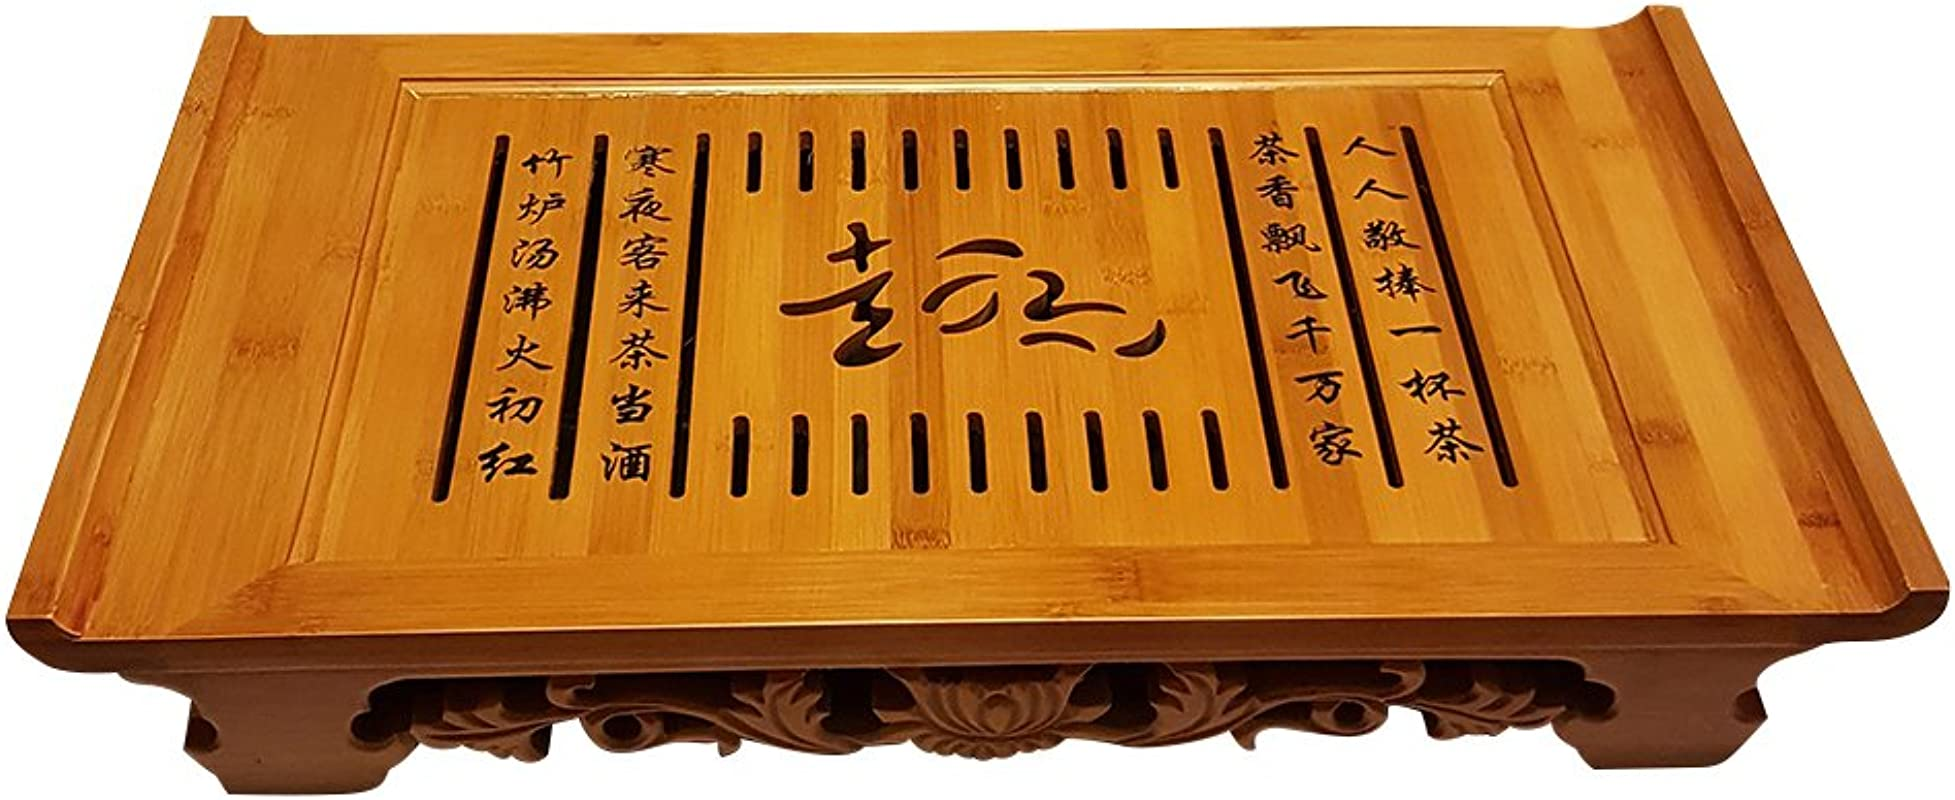 Bamboo GongFu Tea Serving Tray L21 X W12 X H2 75